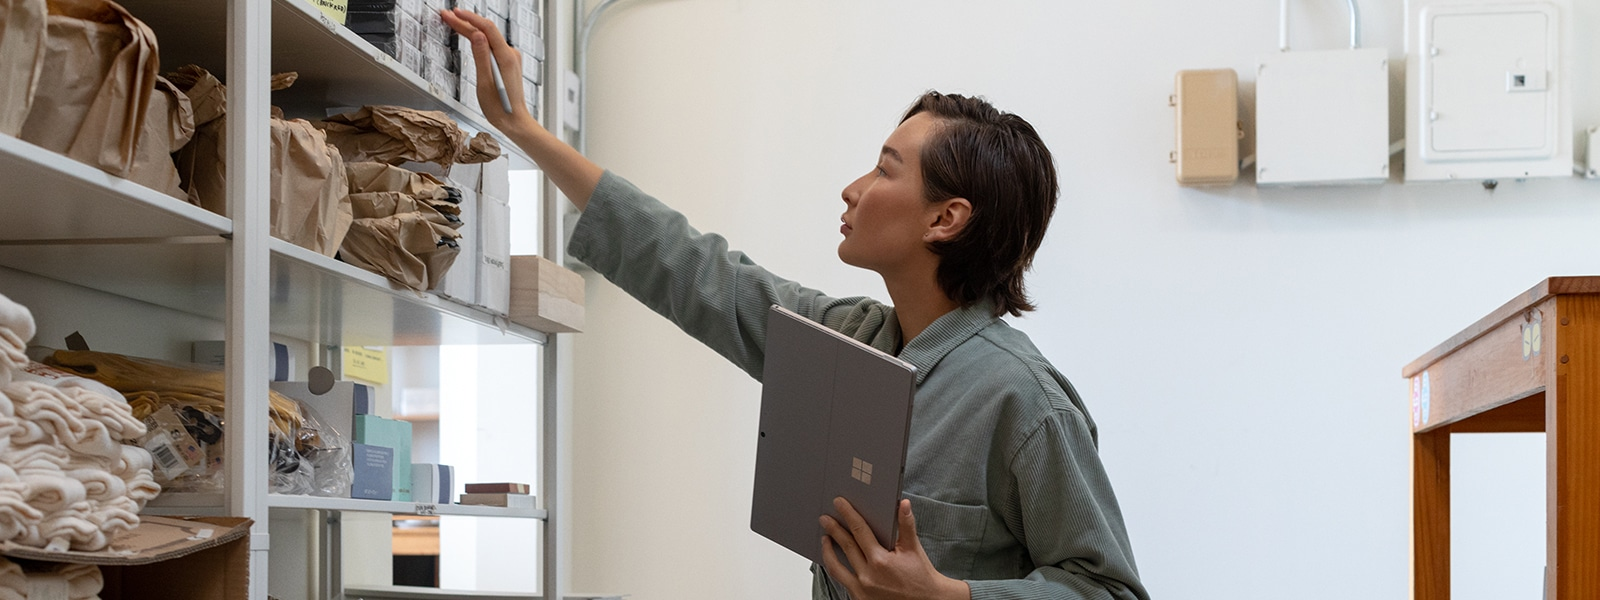 A woman holding a Surface Pro 7 while reaching for supplies on a shelf